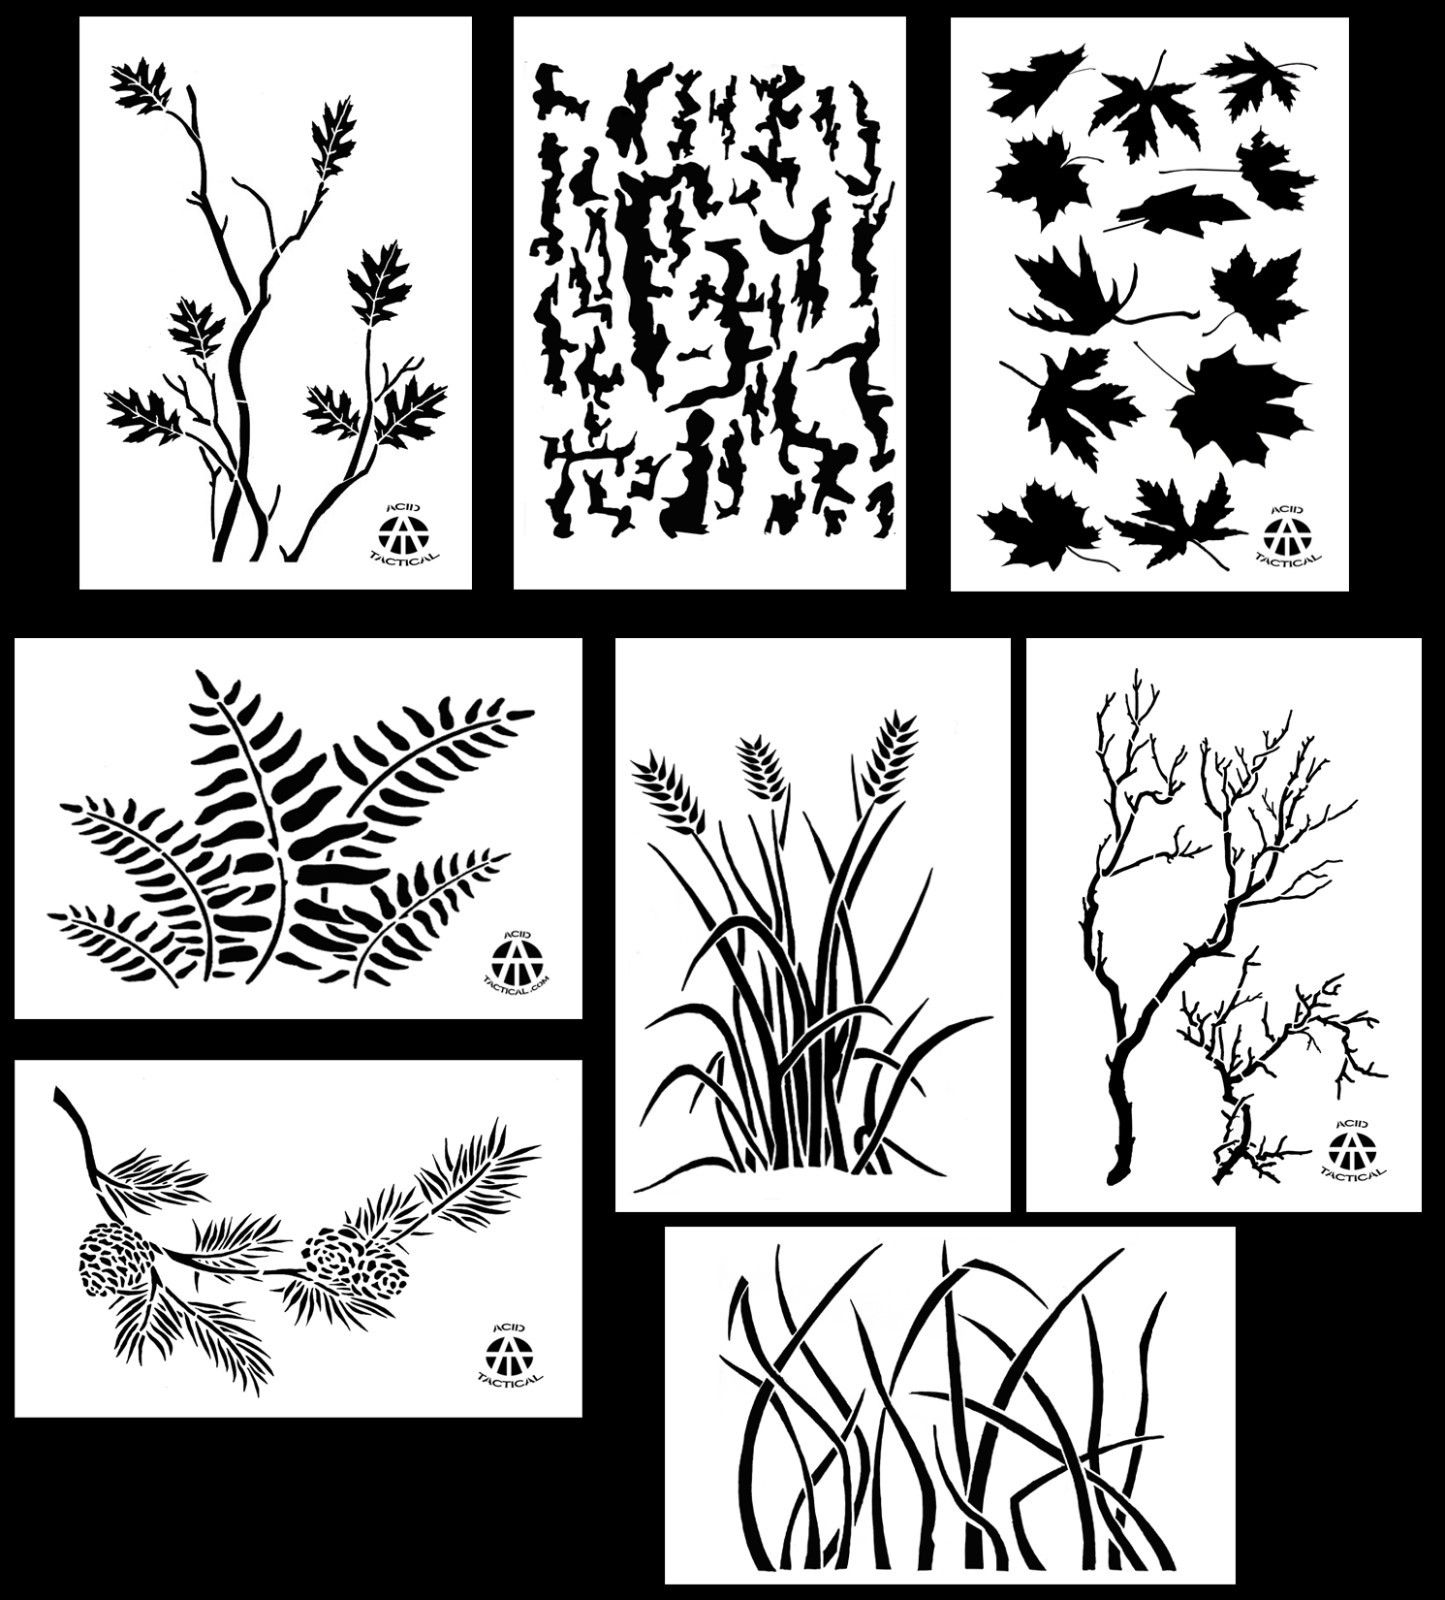 image relating to Digital Camo Stencil Printable identify 8Pack! Spray Paint Camouflage Stencils 10 Mil Do-it-yourself Camo Templates 14\